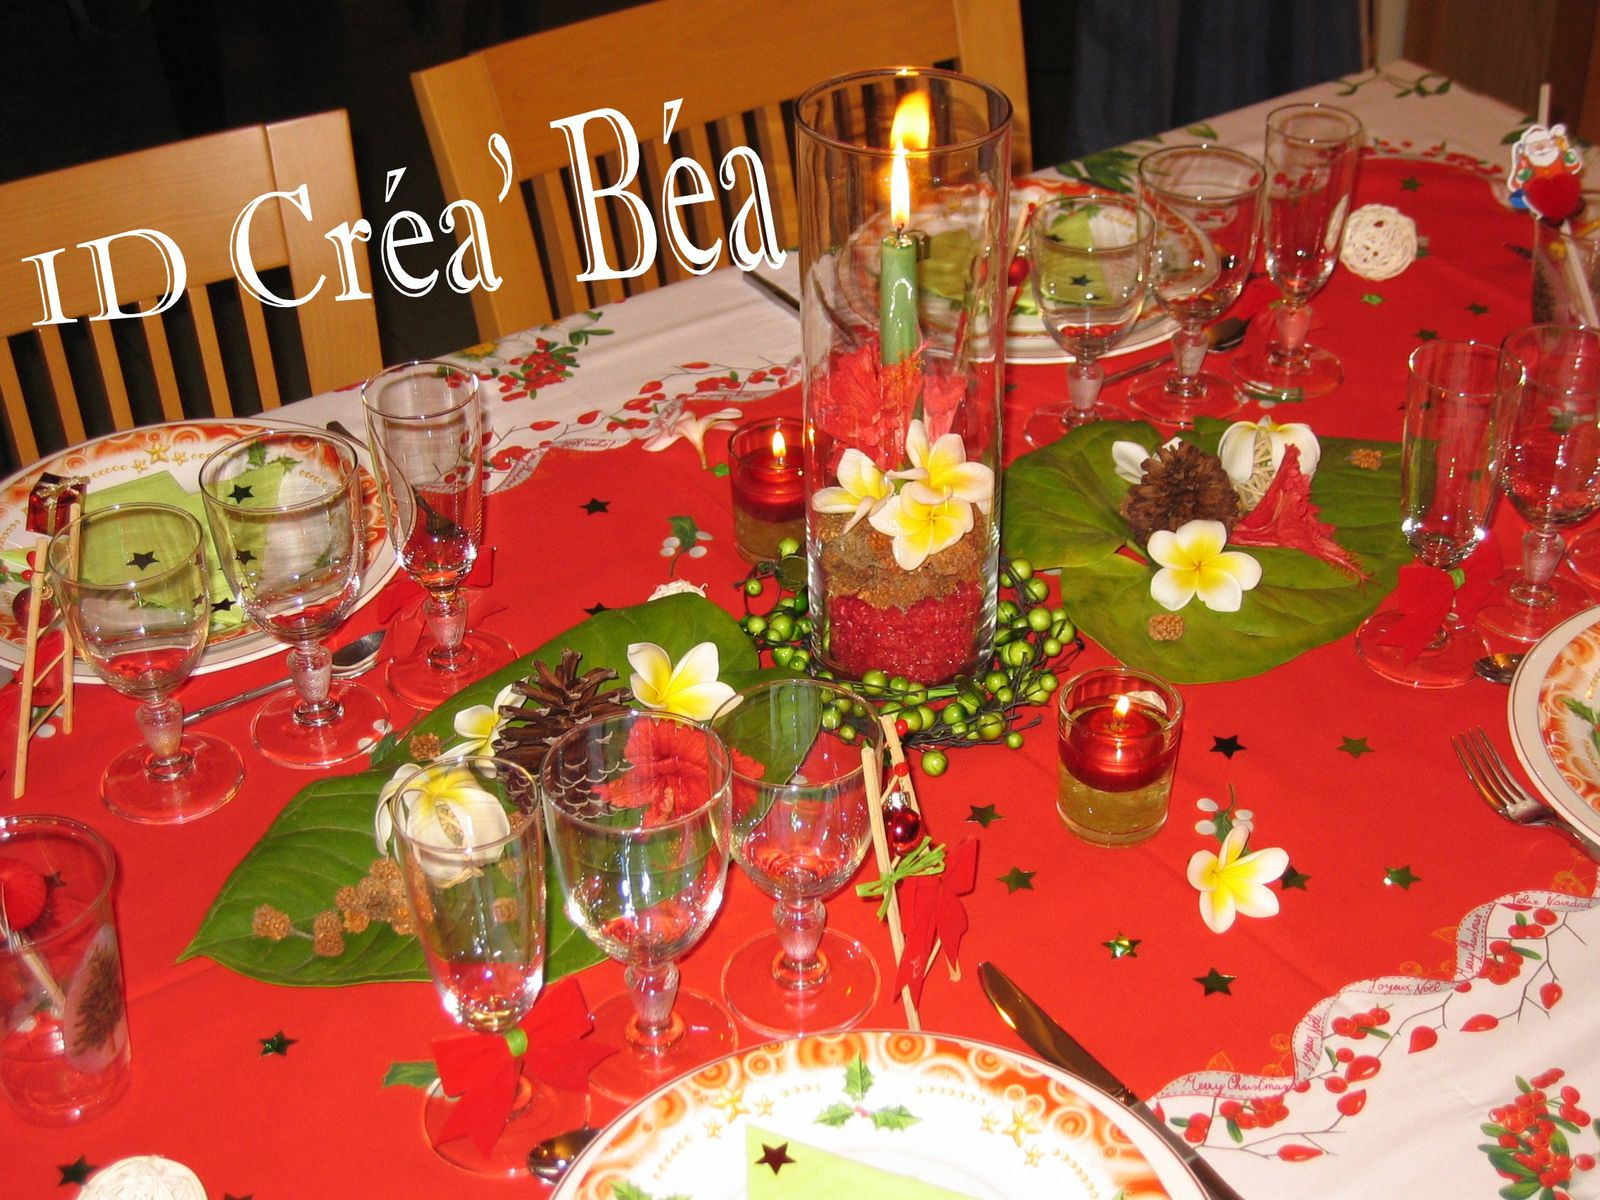 Decoration table de noel vert et rouge - Decoration table reveillon jour de l an ...